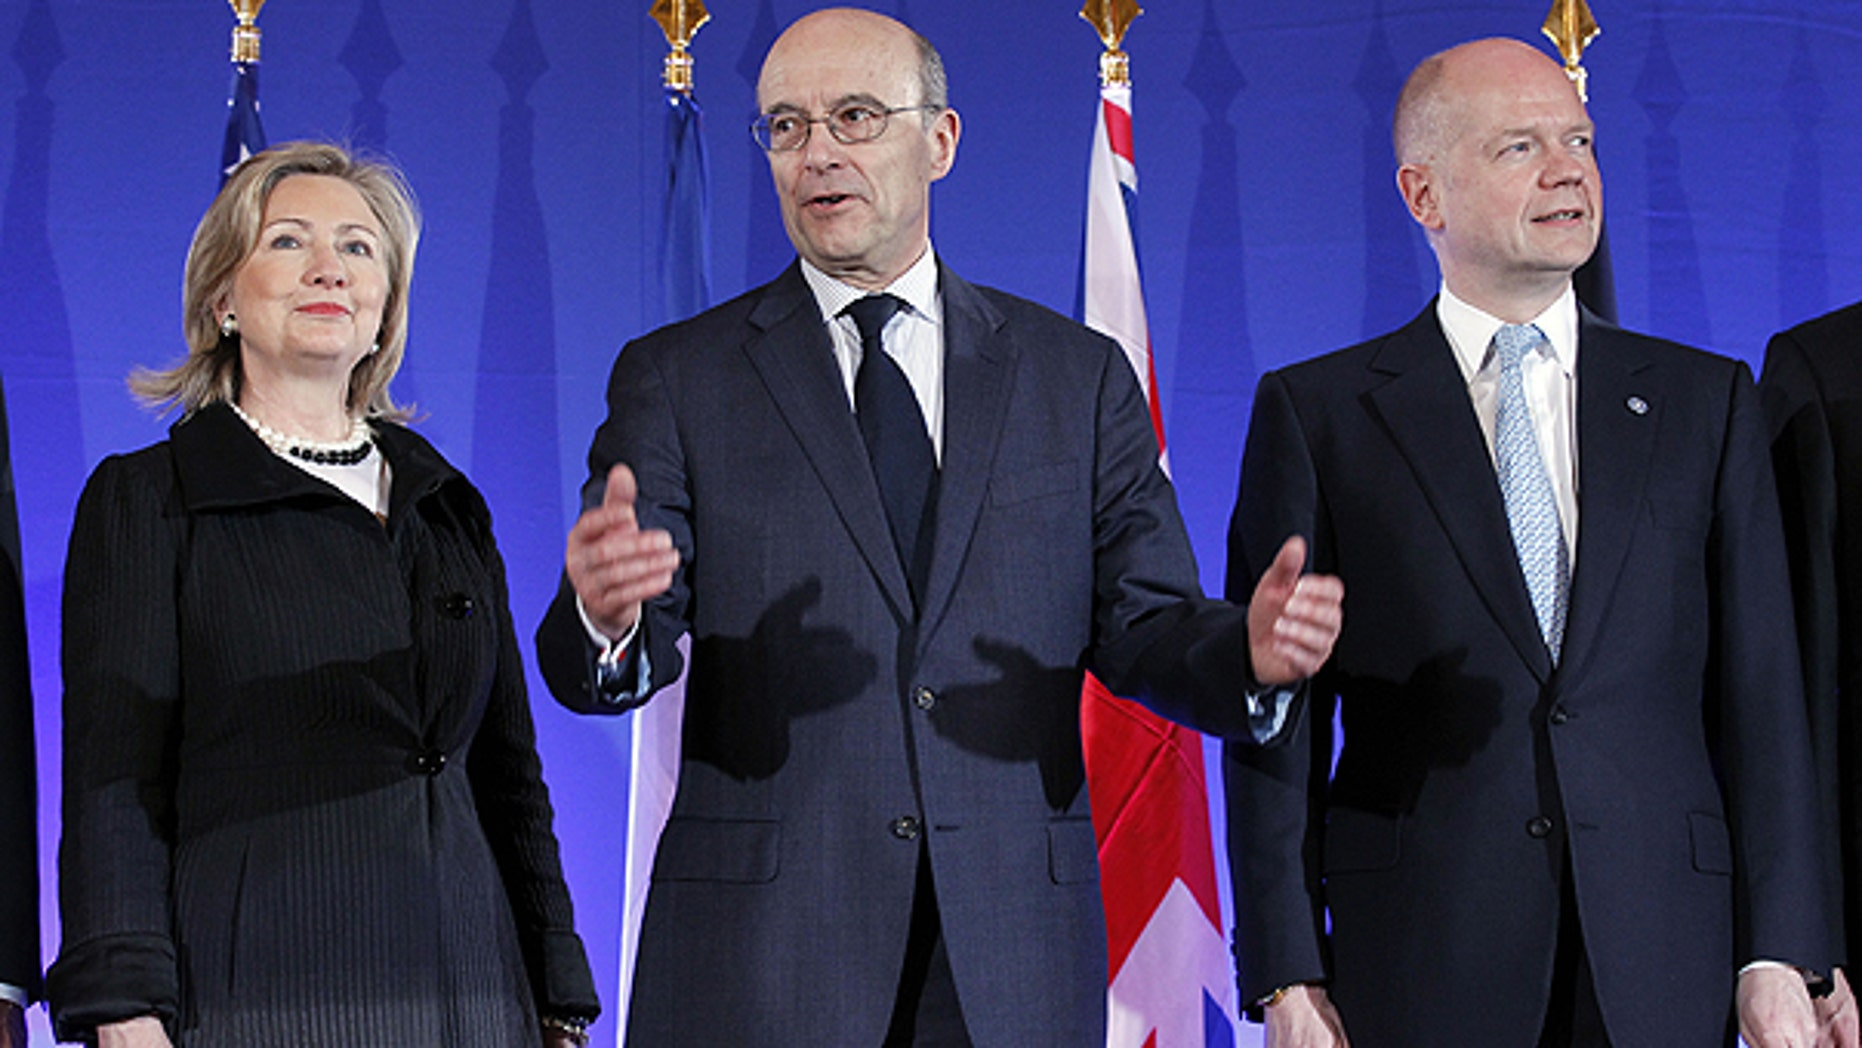 March 14: French Foreign Minister Alain Juppe, center, gestures as he poses with his counterpart William Hague of Britain and U.S. Secretary of State Hillary Rodham Clinton, during a Group of Eight foreign Ministers meeting in Paris.